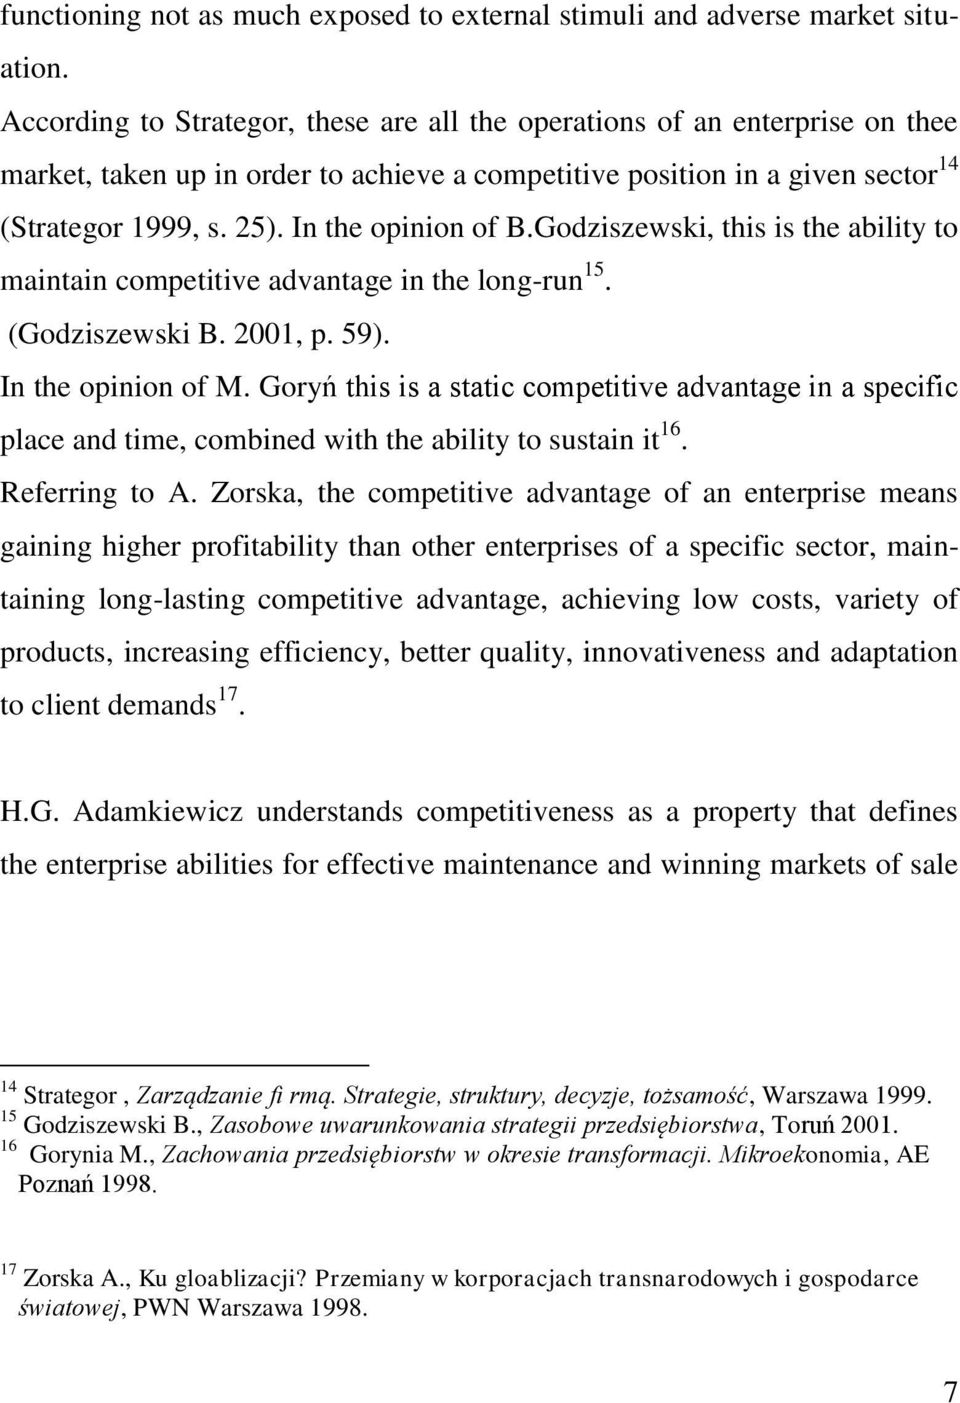 In the opinion of B.Godziszewski, this is the ability to maintain competitive advantage in the long-run 15. (Godziszewski B. 2001, p. 59). In the opinion of M.